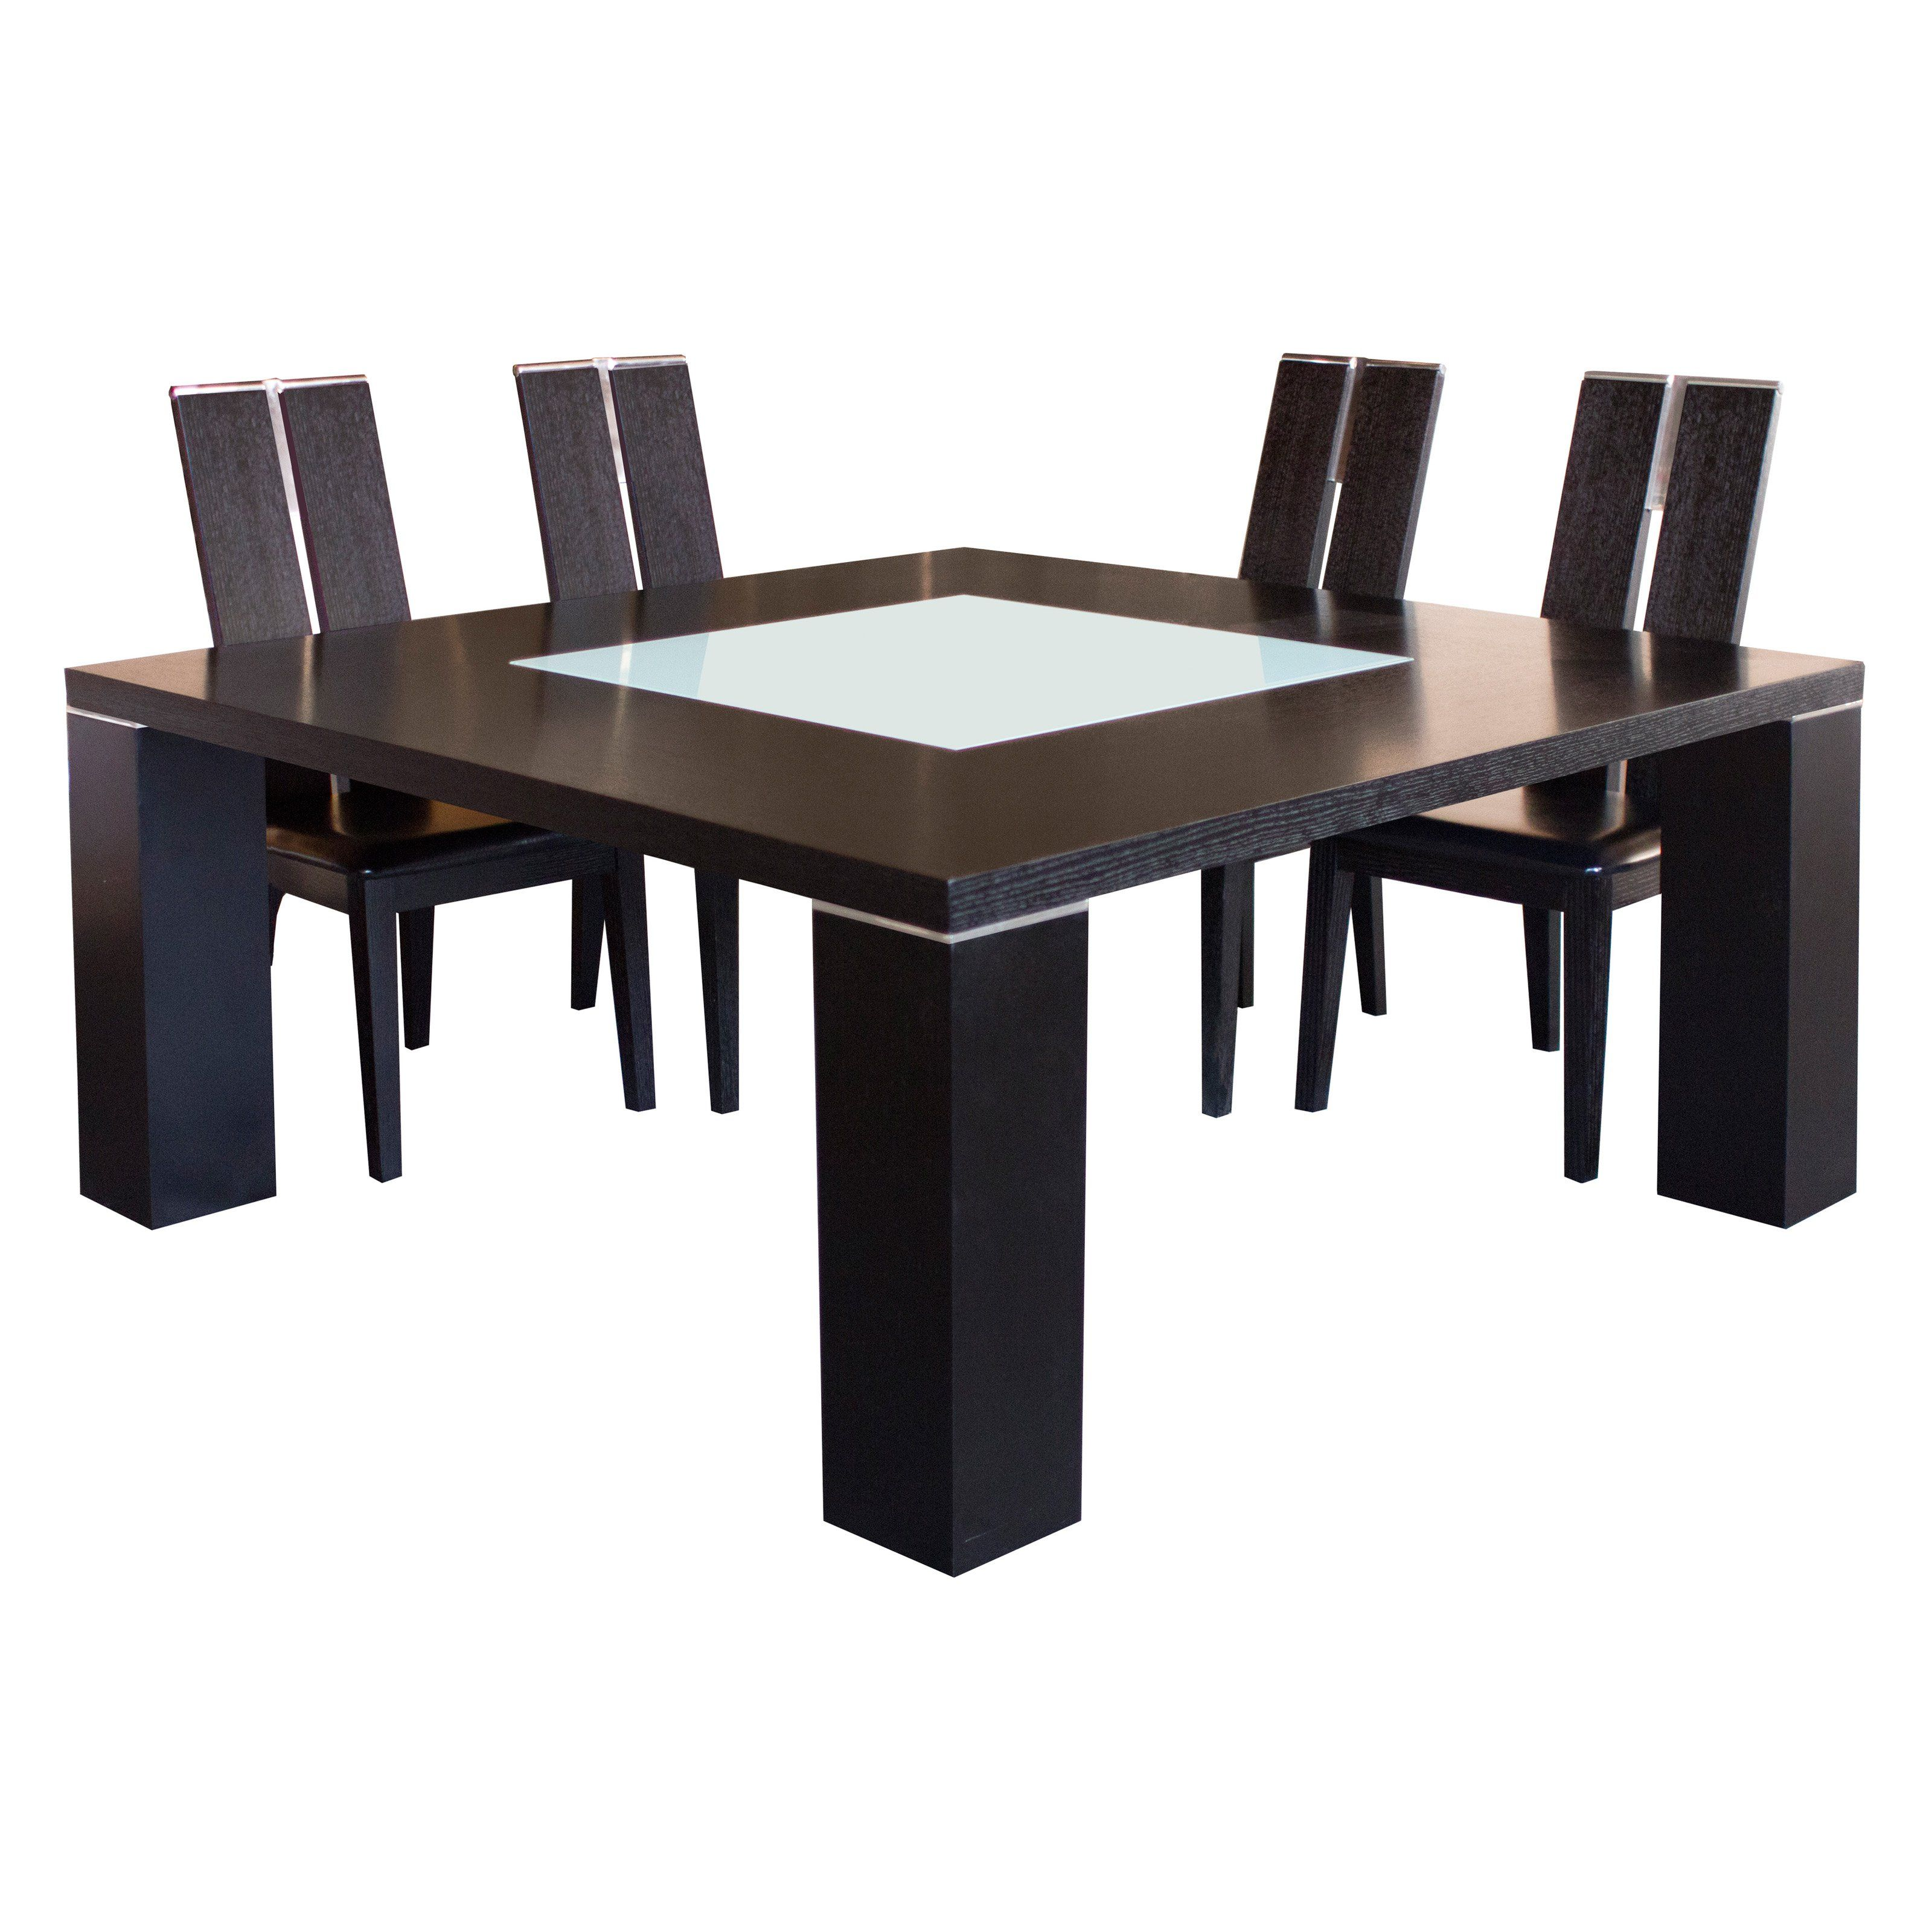 Elite Dining Room Furniture Have To Have Itelite Square Dining Table With Glass Insert